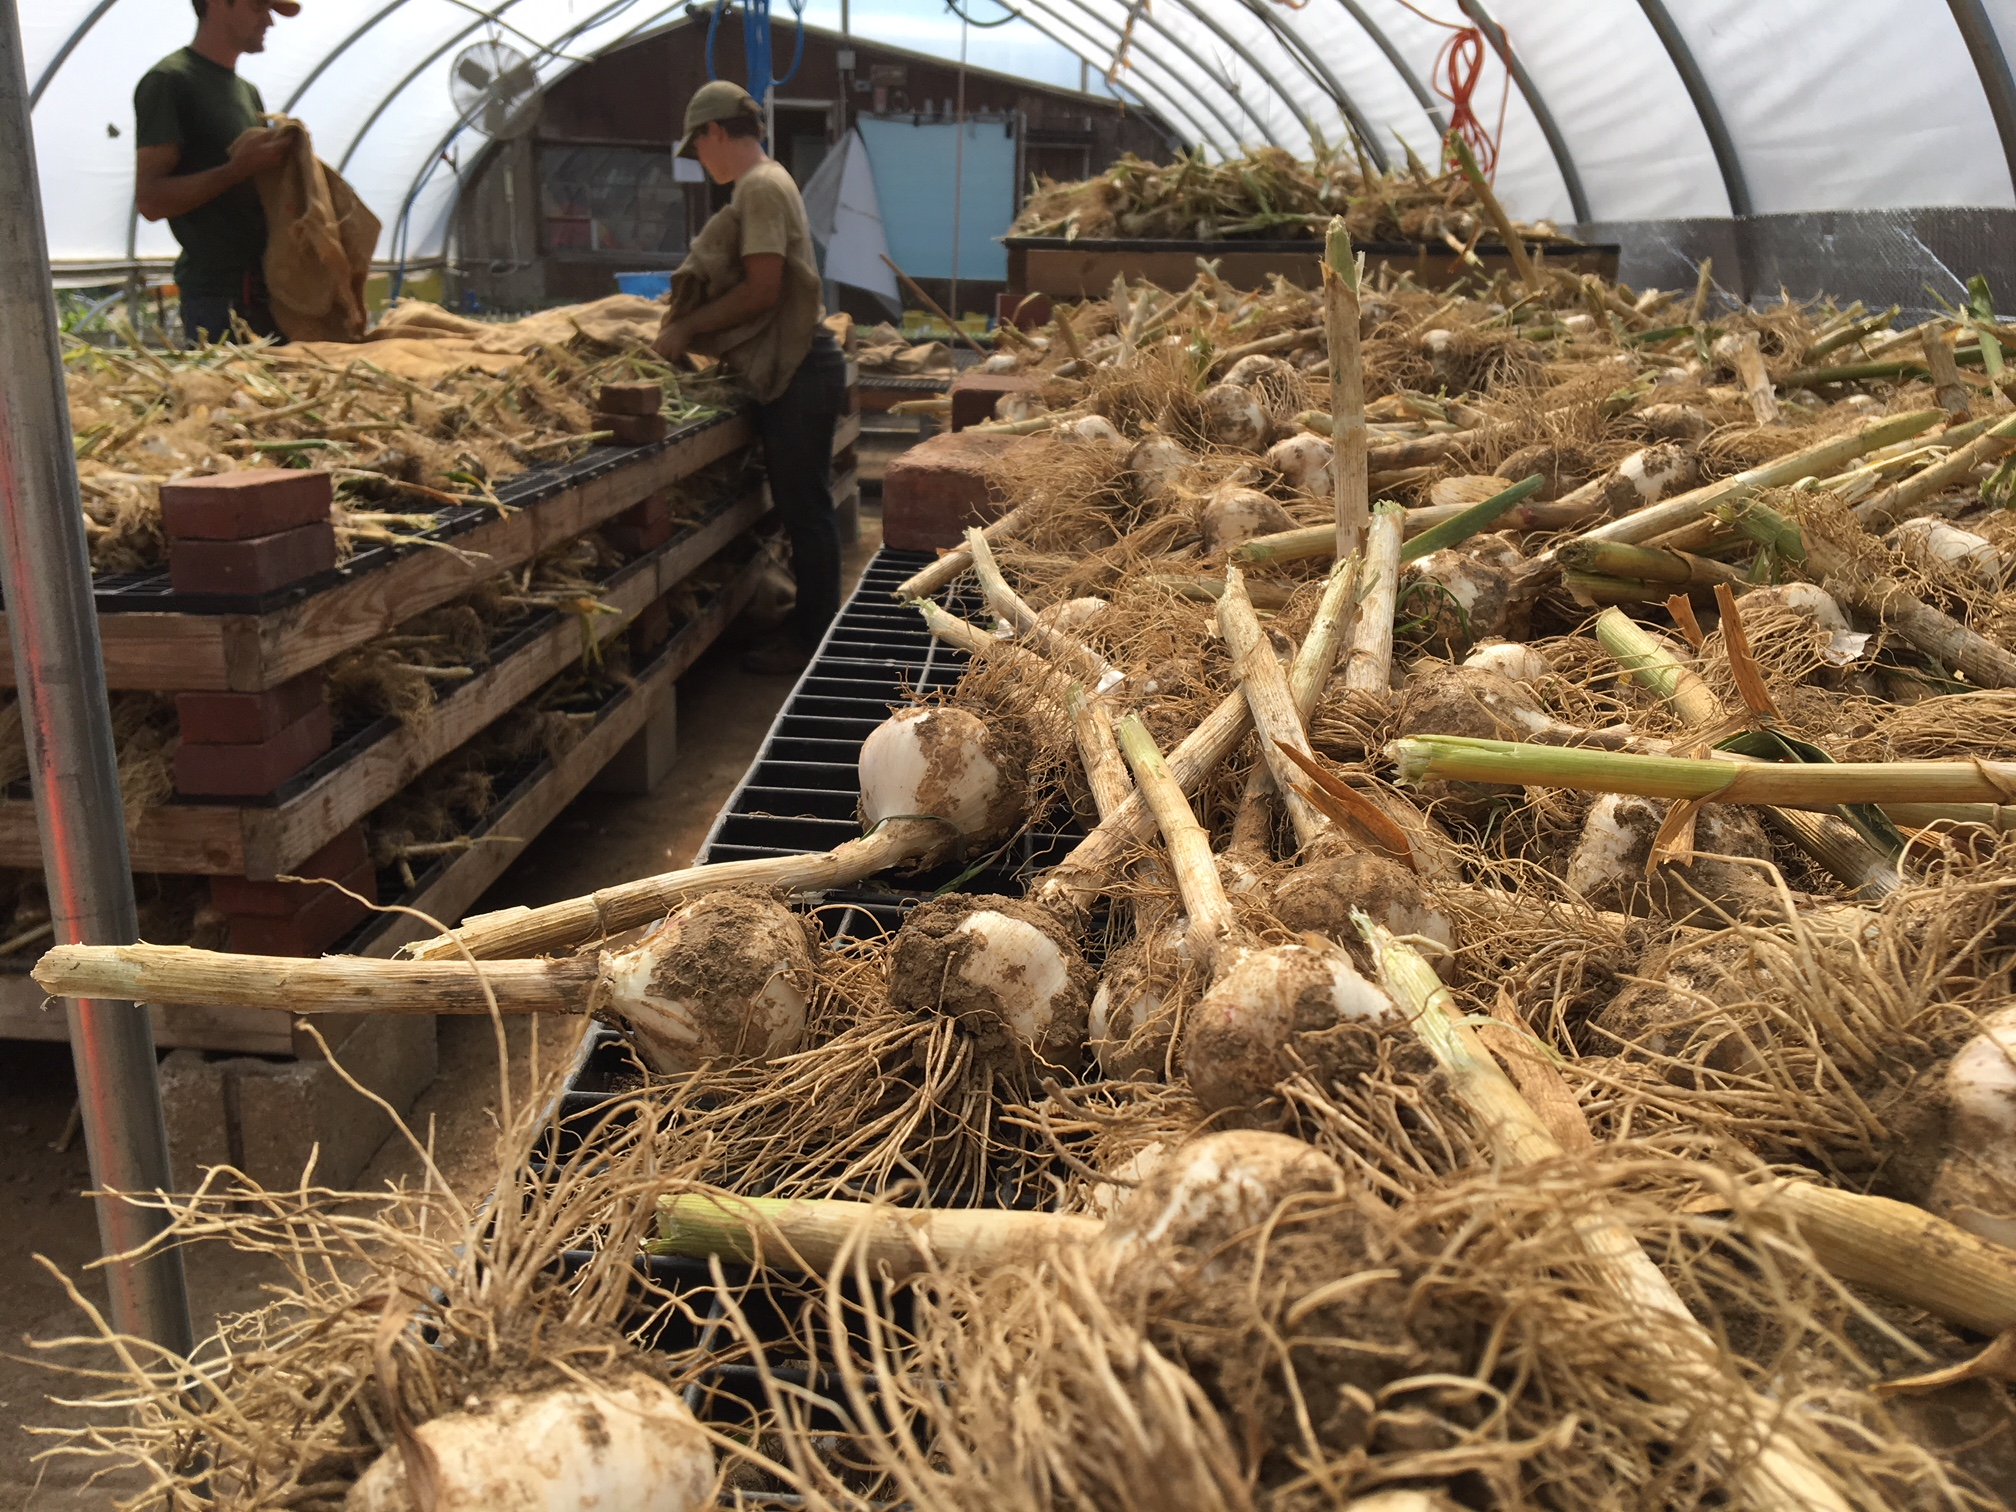 Garlic curing in the greenhouse